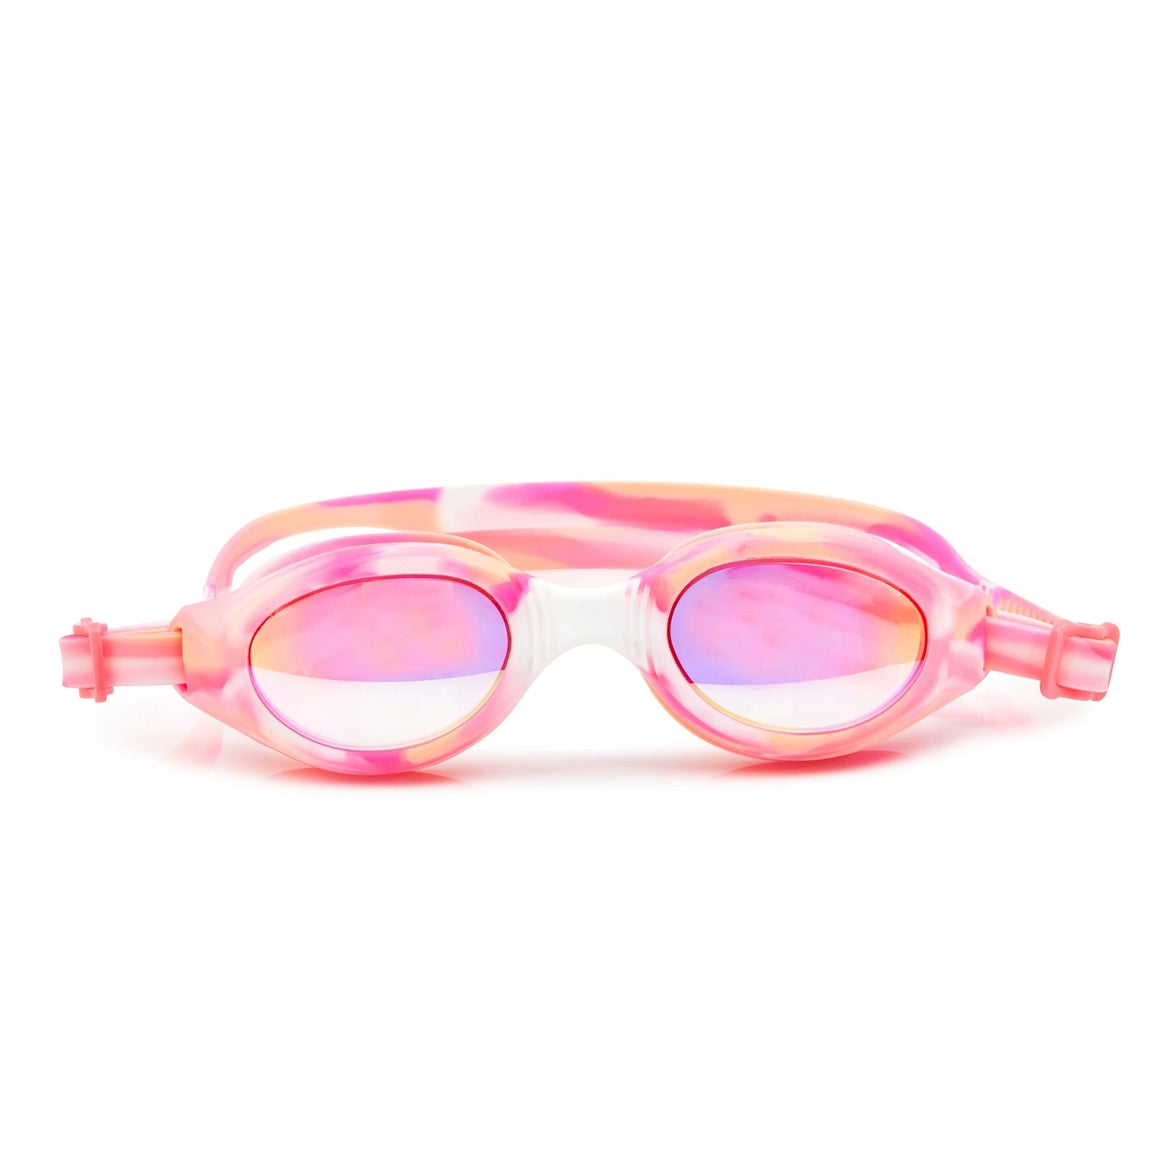 Girls Swim Goggles : Salt Water Taffy in Orange Creamsicle colorway from Bling2O